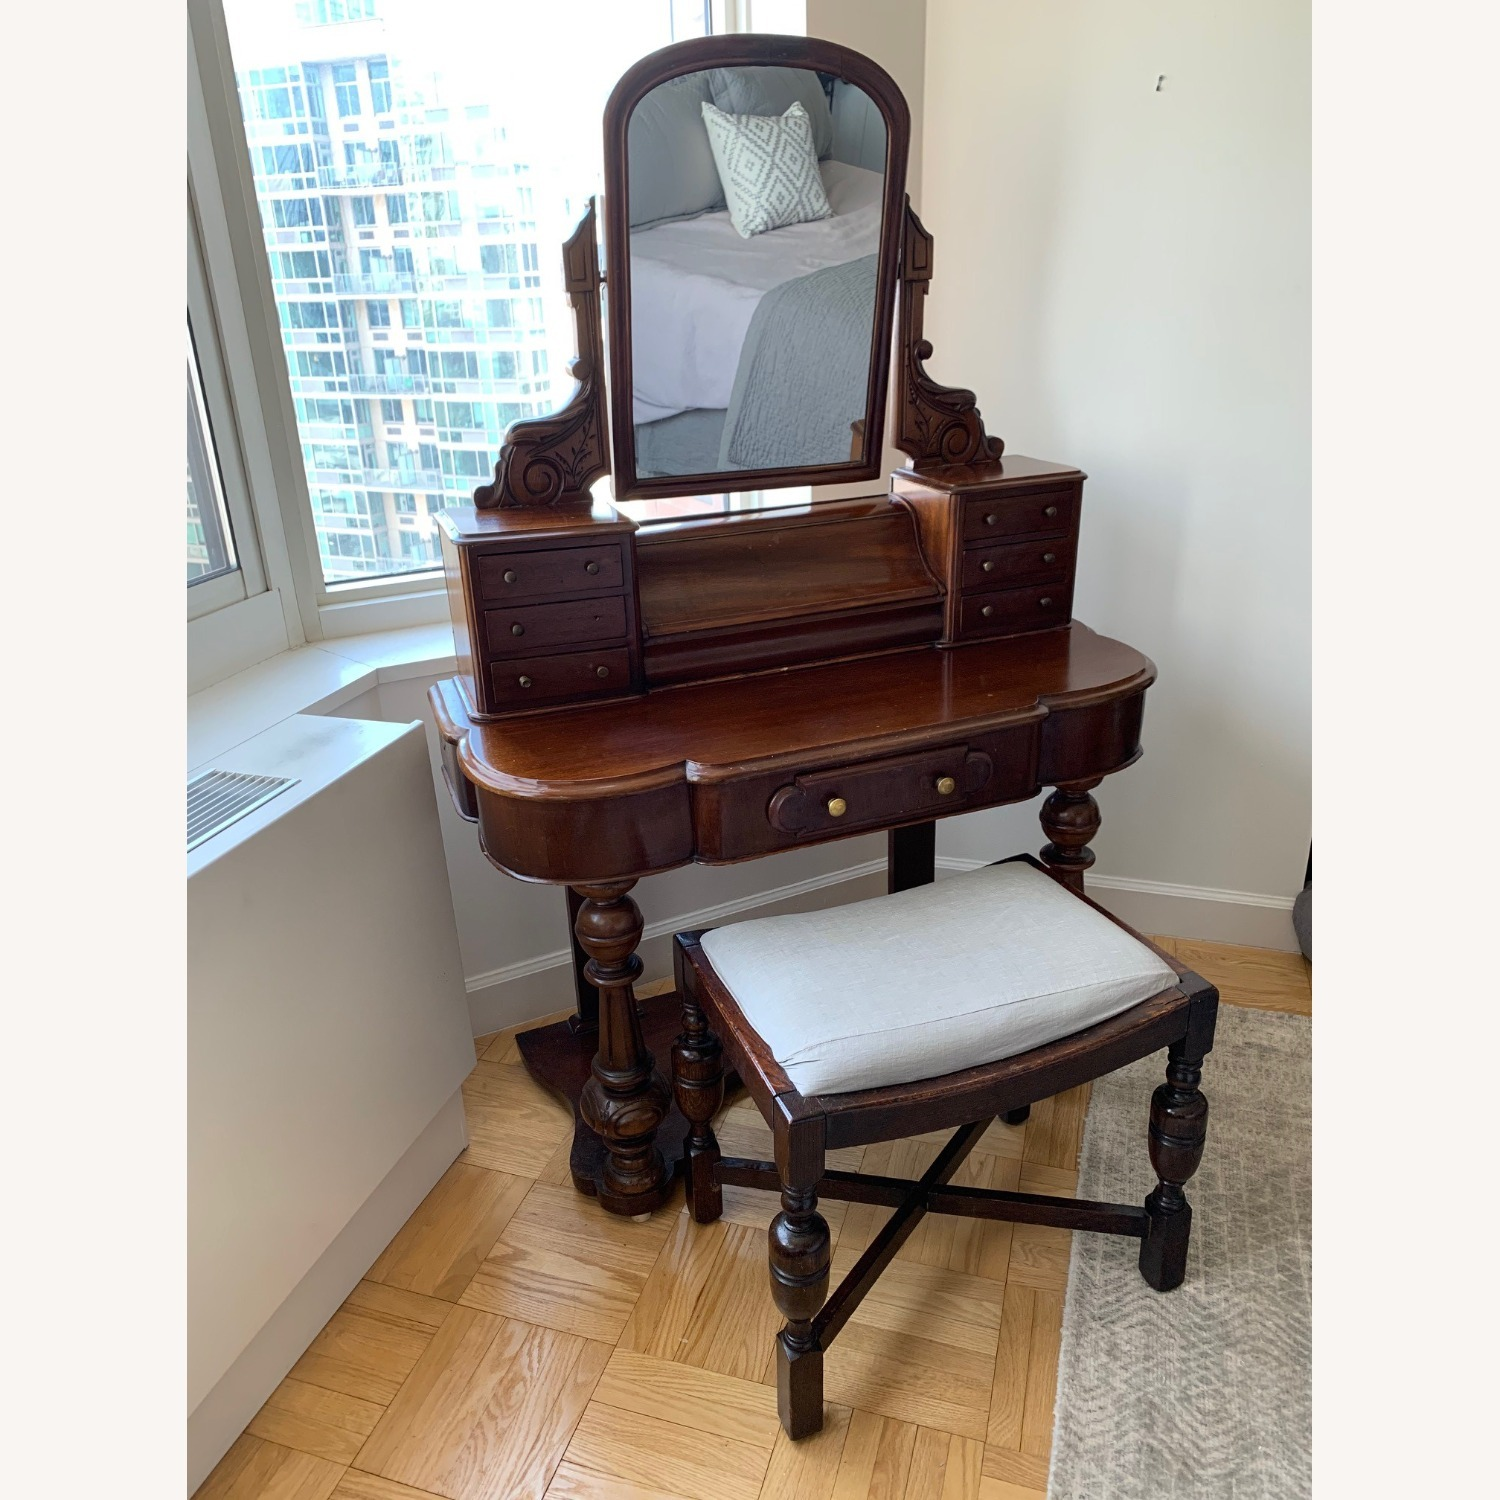 Victorian Antique Vanity Dressing Table and Stool - image-3